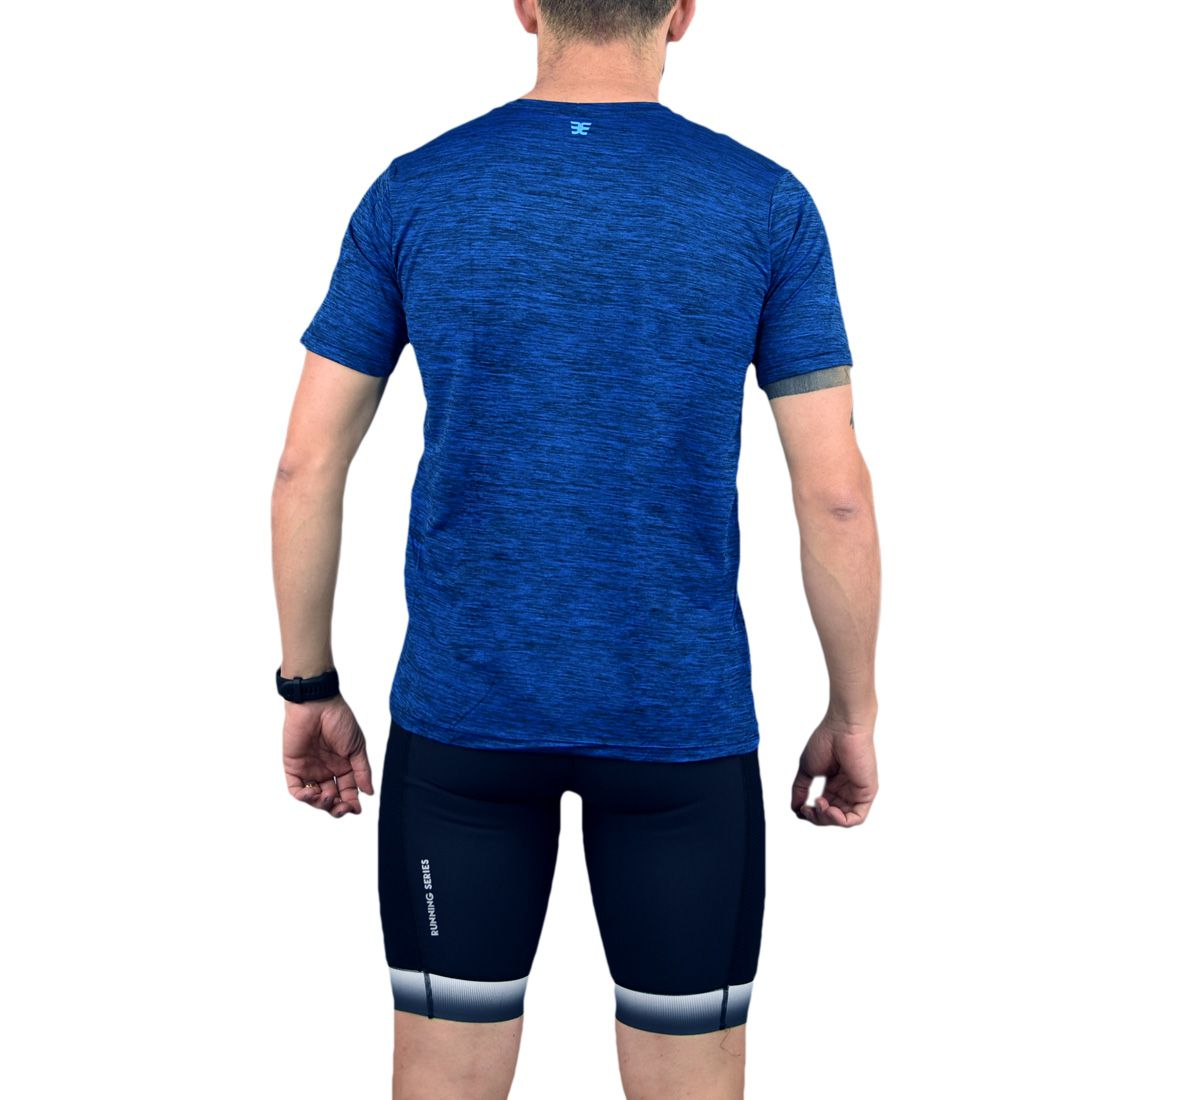 Camiseta Running Masc - Walker - Azul